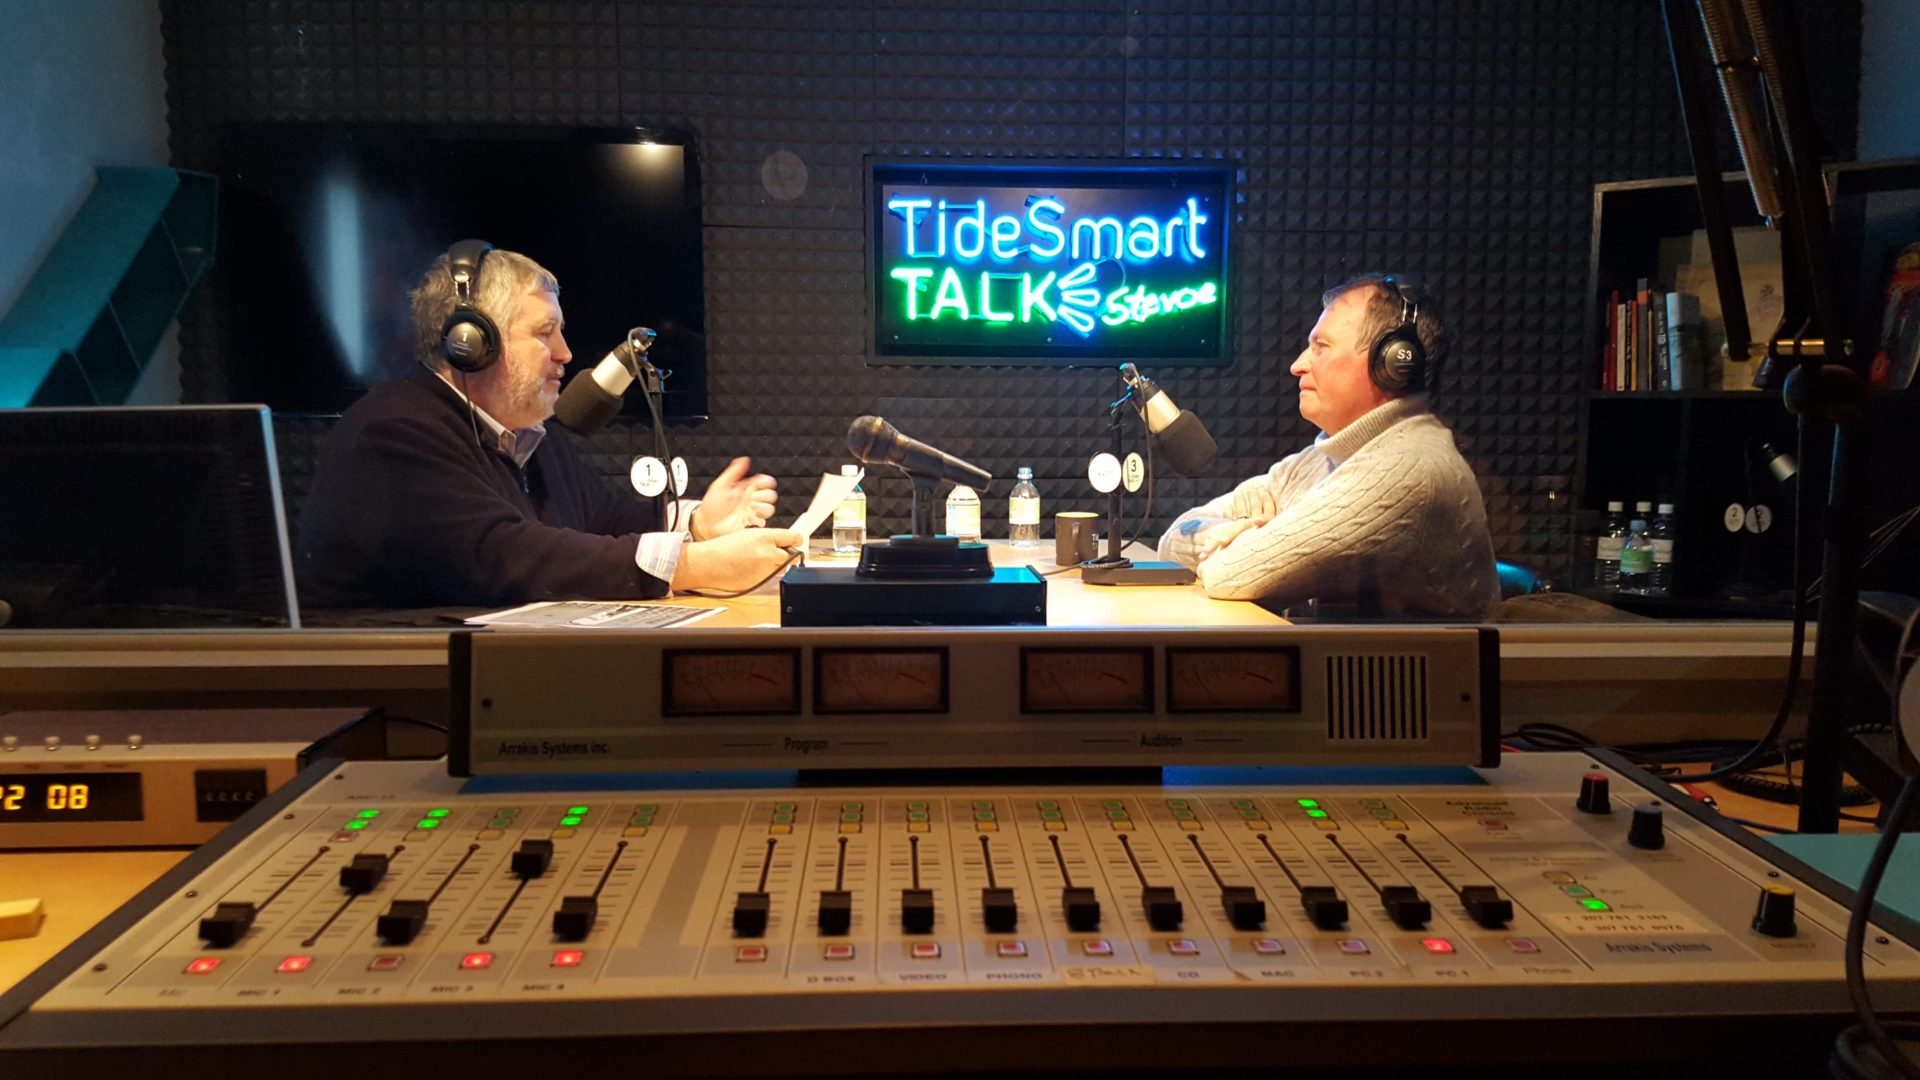 Host of TideSmart Talk with Stevoe, Steve Woods, welcomed Author, Paul Doiron (at right).